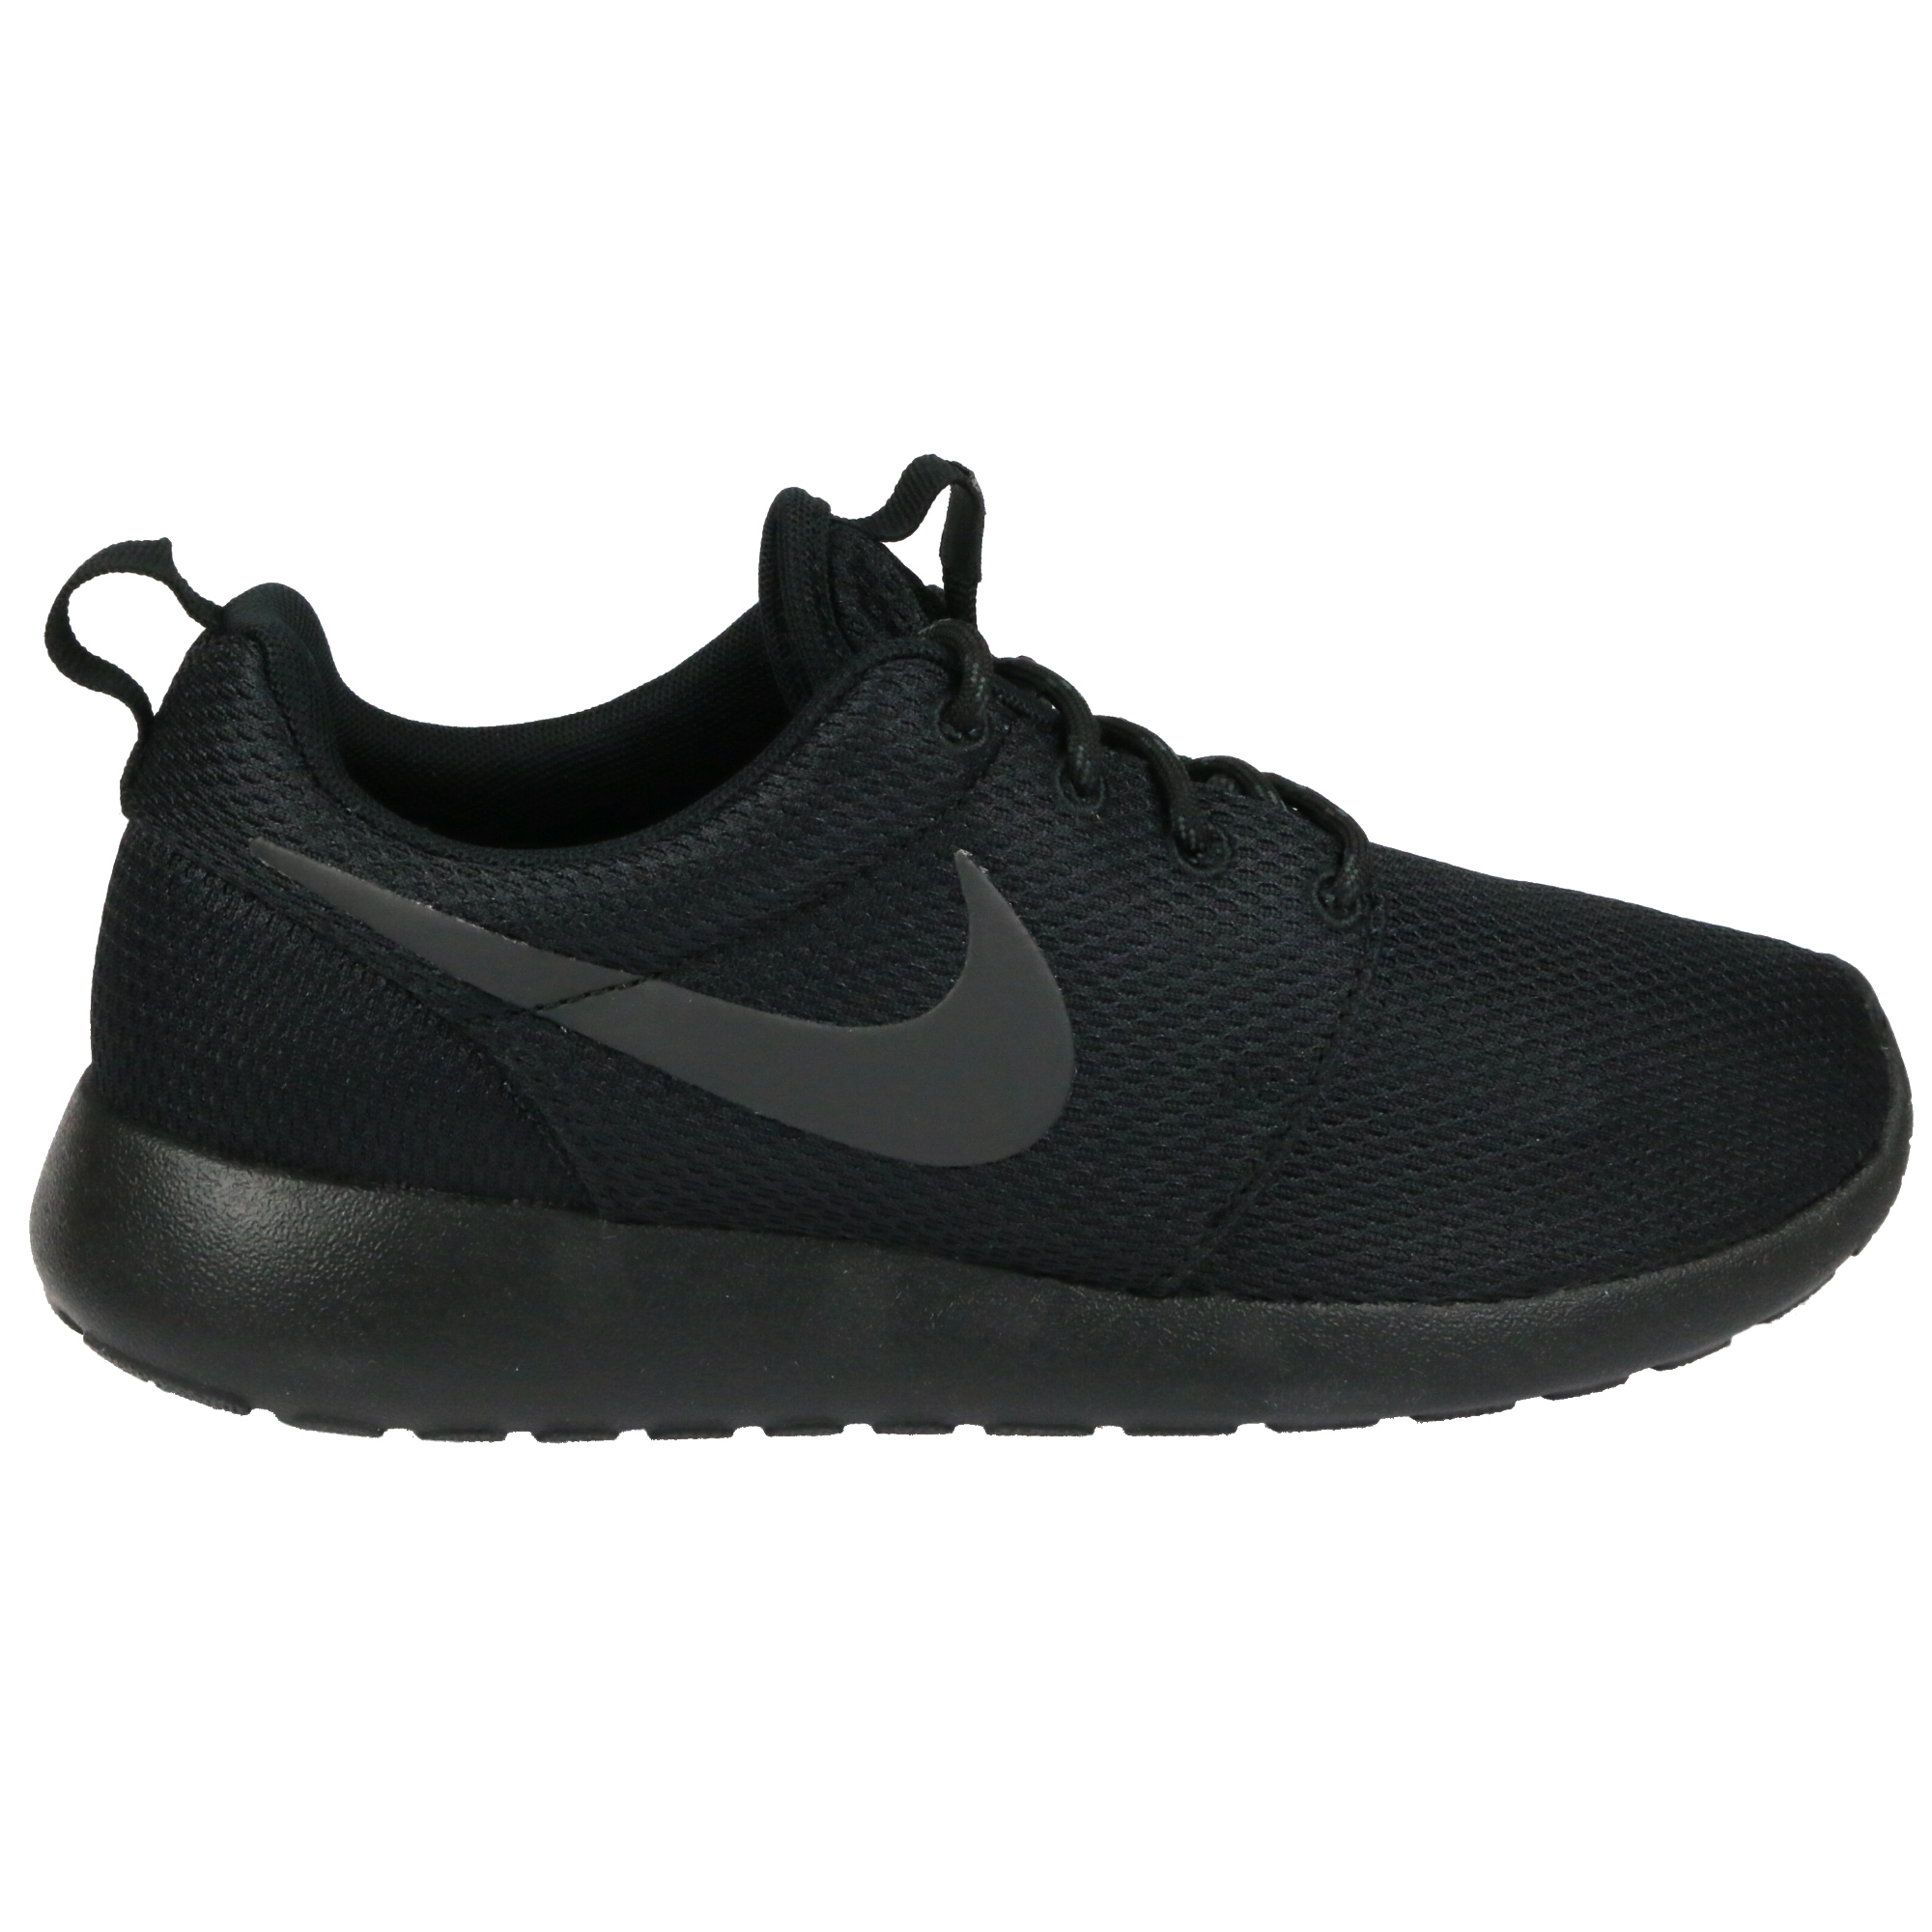 Nike Roshe One Shoes Trainers Sneakers Women's